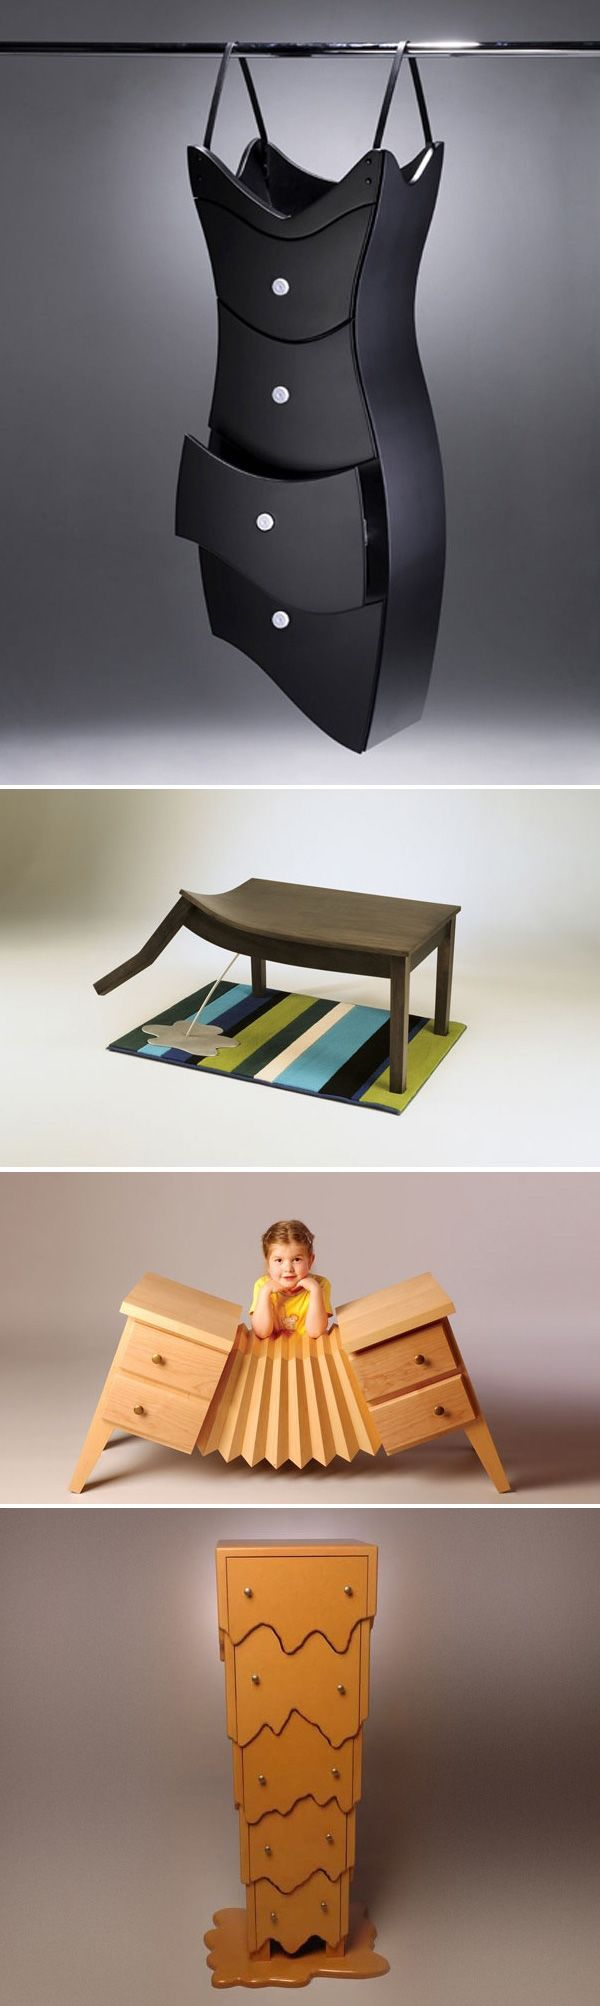 http://www.itsnotbadatall.com/funny_pictures/html/Weird_Furniture.html